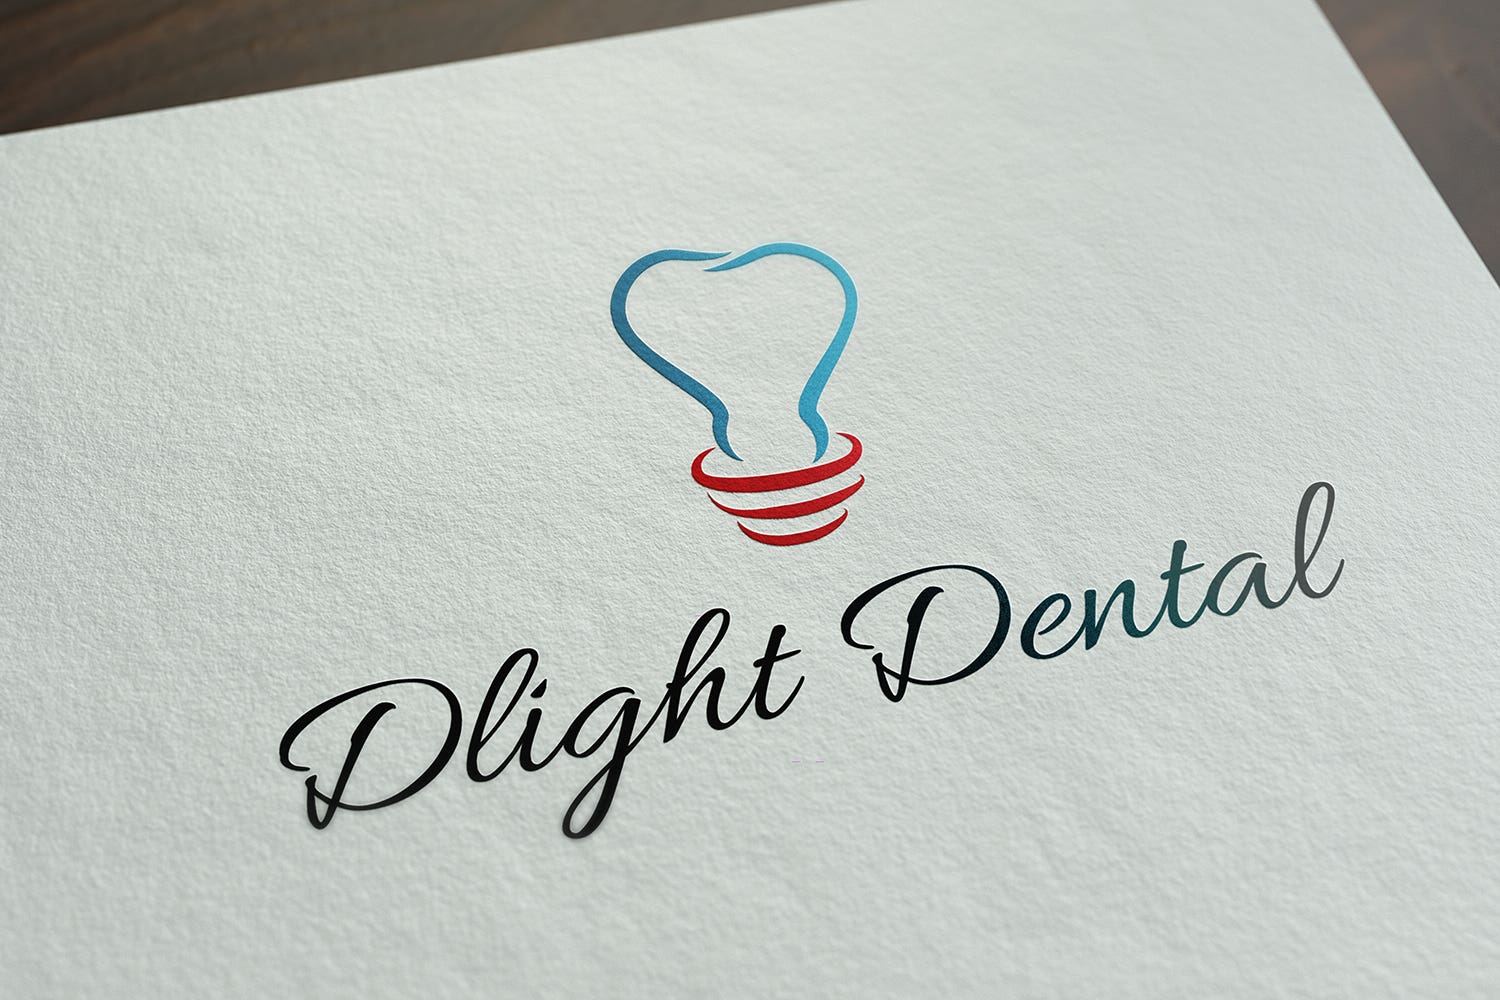 Dlight Dental (Proposed Logo)